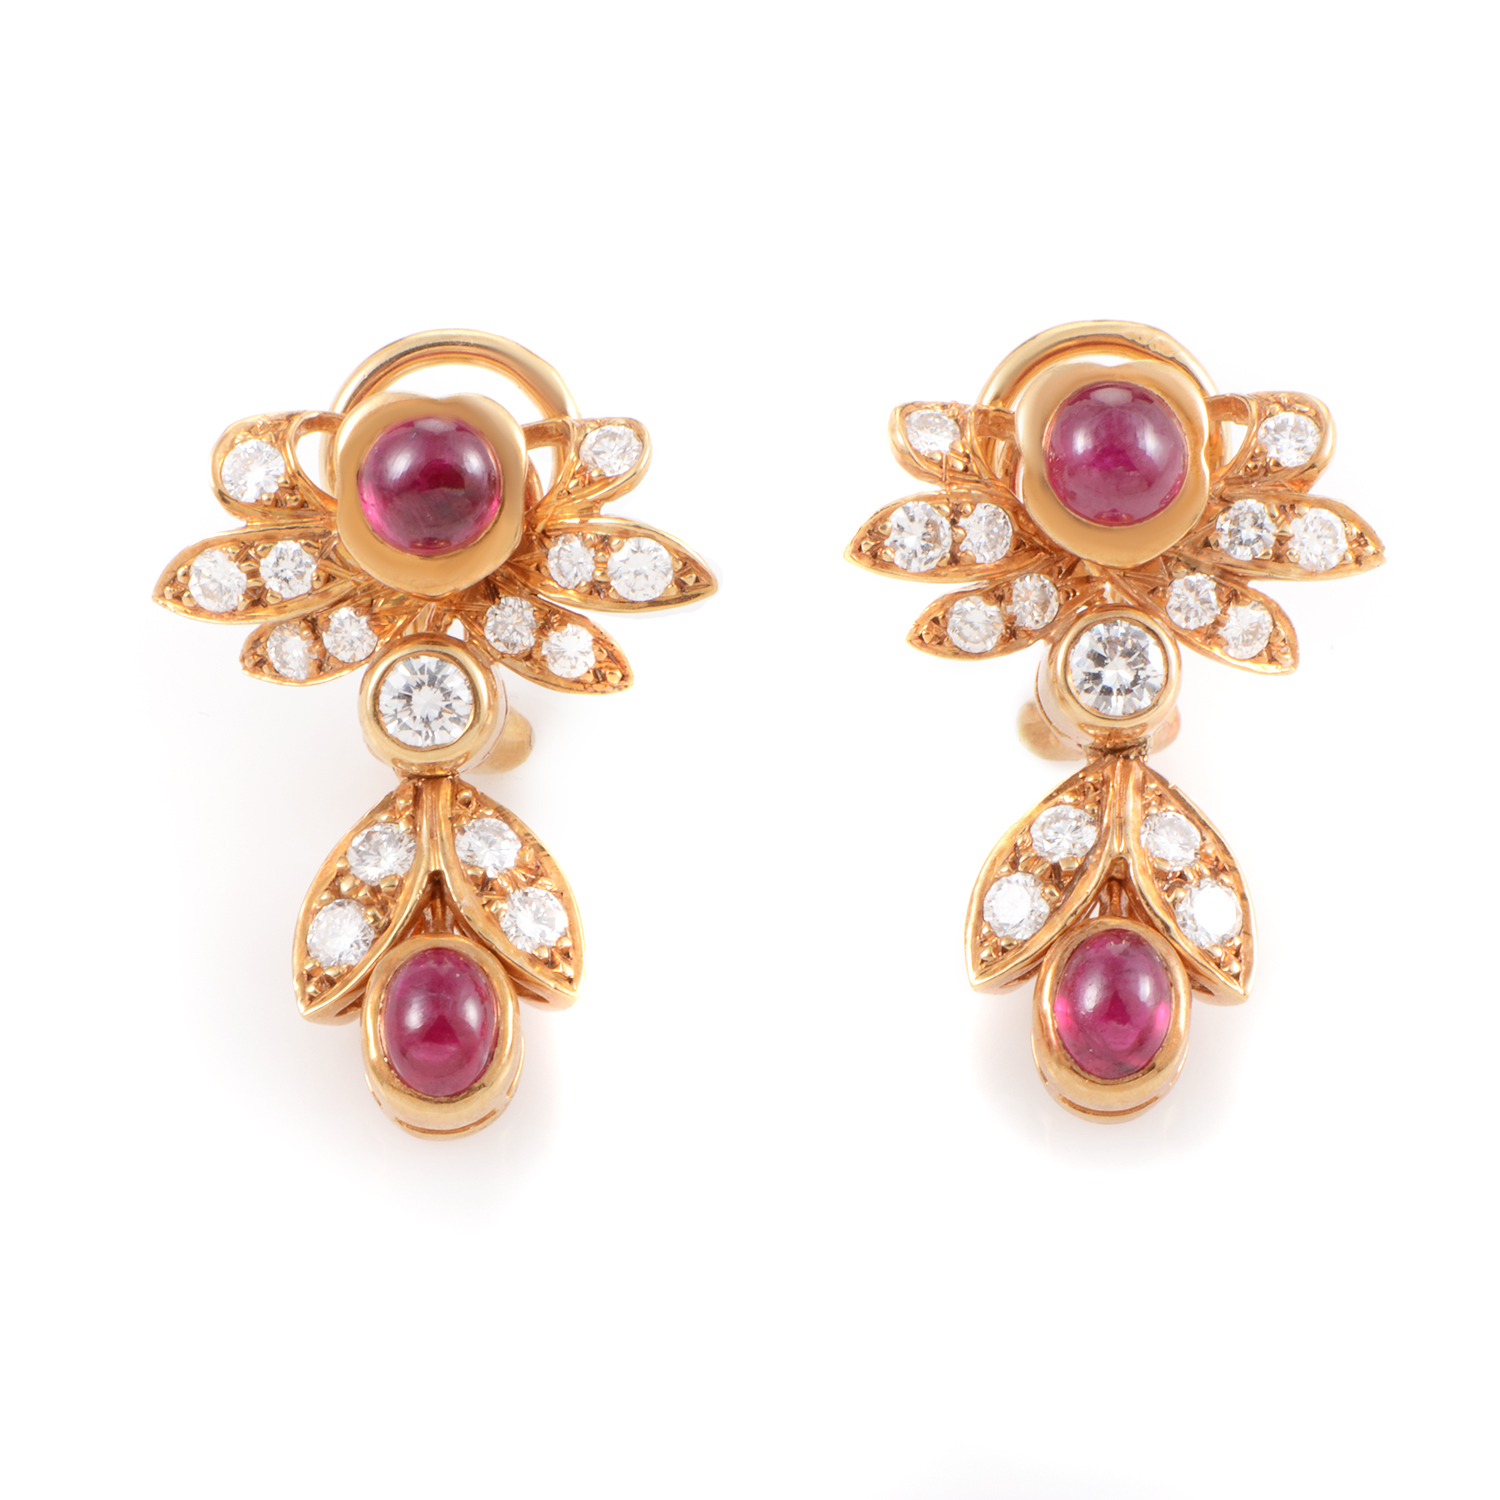 Chaumet 18K Yellow Gold Diamond & Ruby Clip-on Earrings